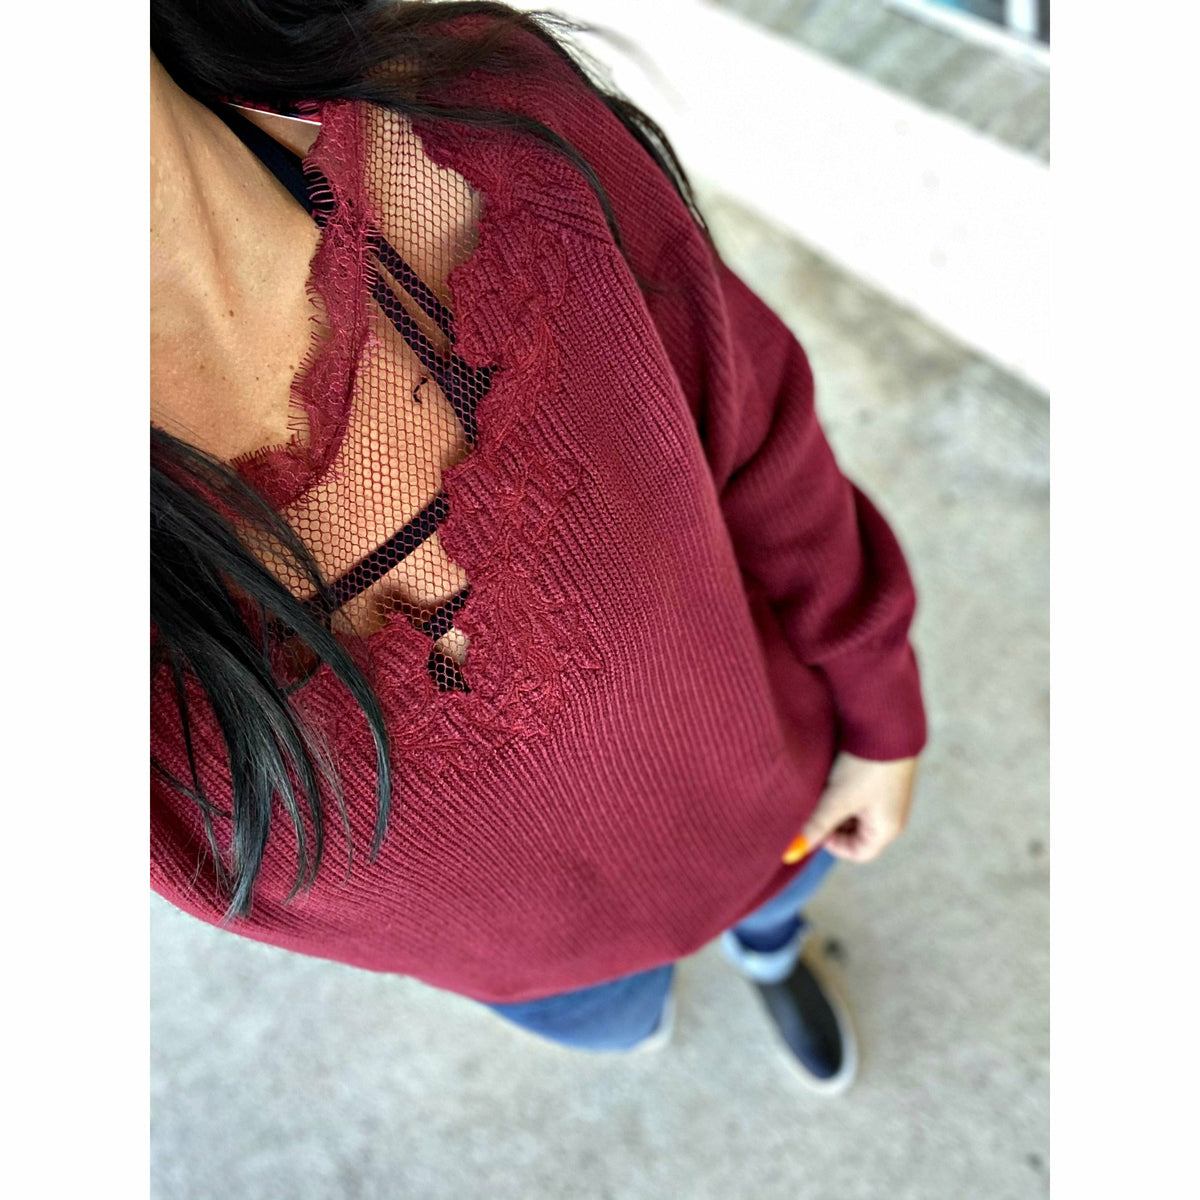 Meshed lace Floral Neck Maroon Top